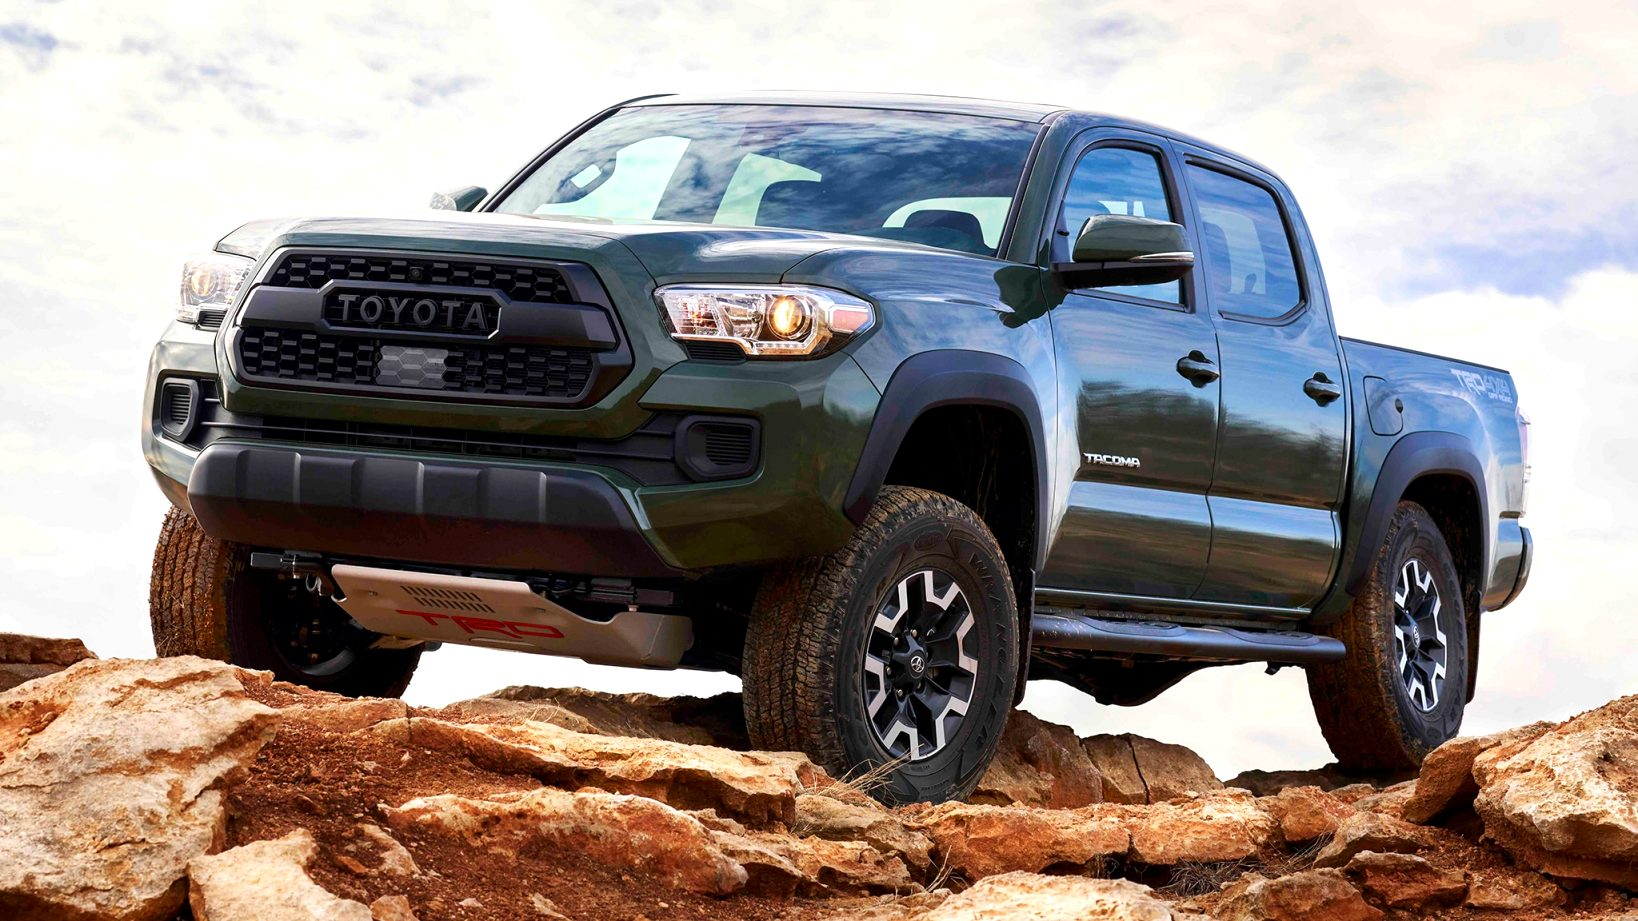 2021 toyota tacoma Specs and Review